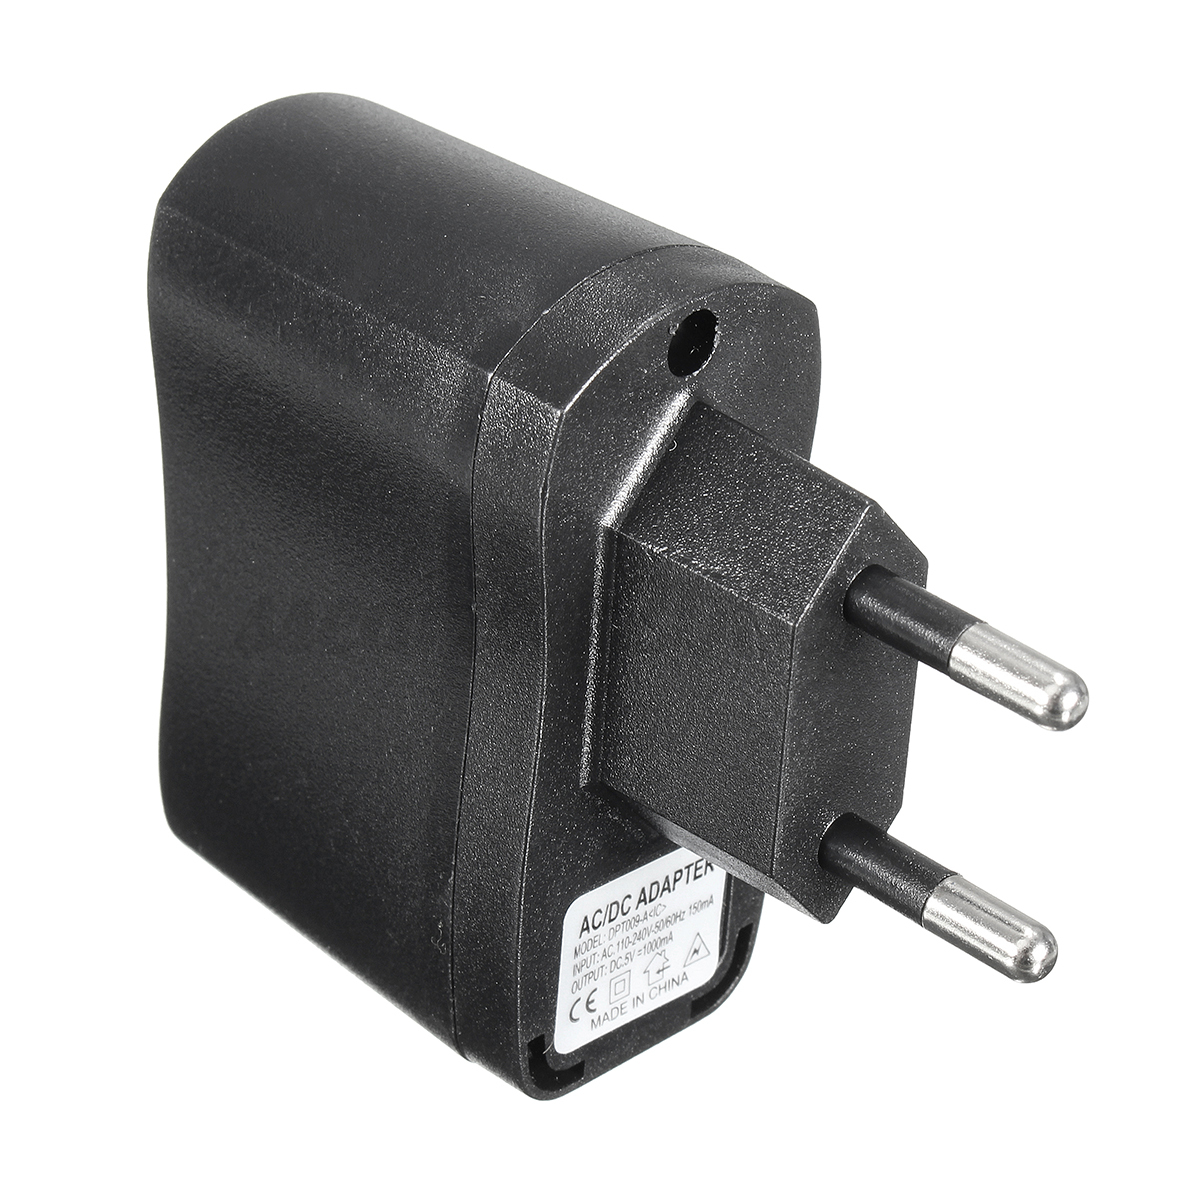 5V 1A USB Travel Wall Charger AC/DC Adapter Charging EU/US ...